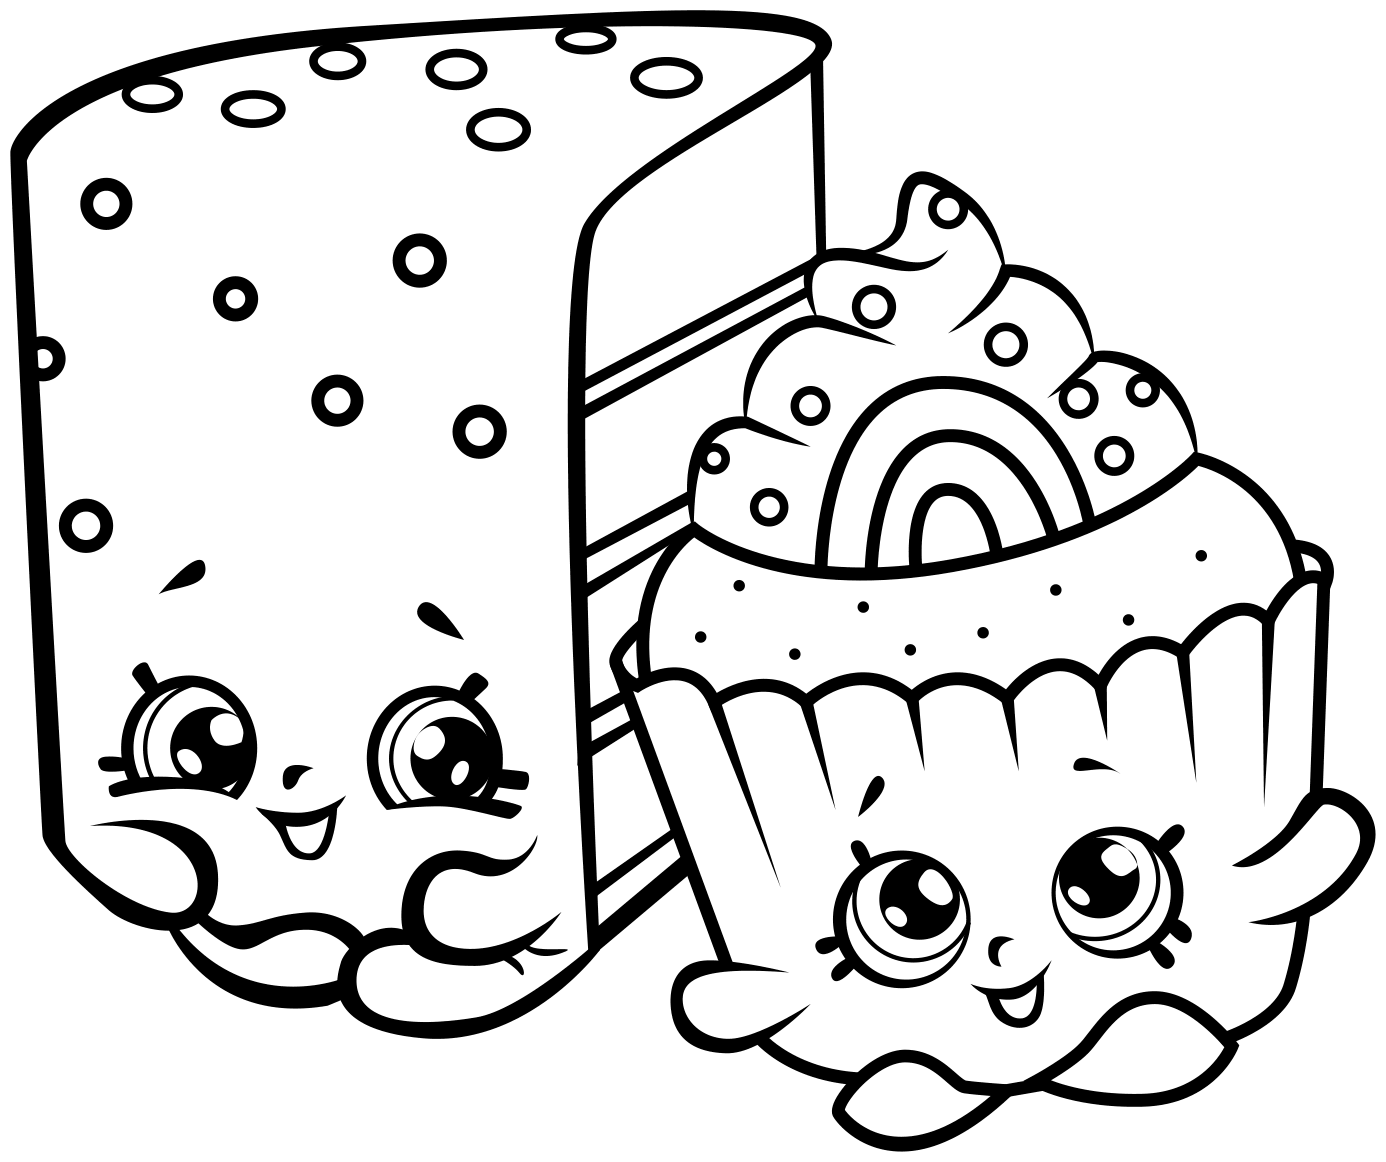 Shopkins Coloring Pages Best Coloring Pages For Kids Coloring Pages Printable